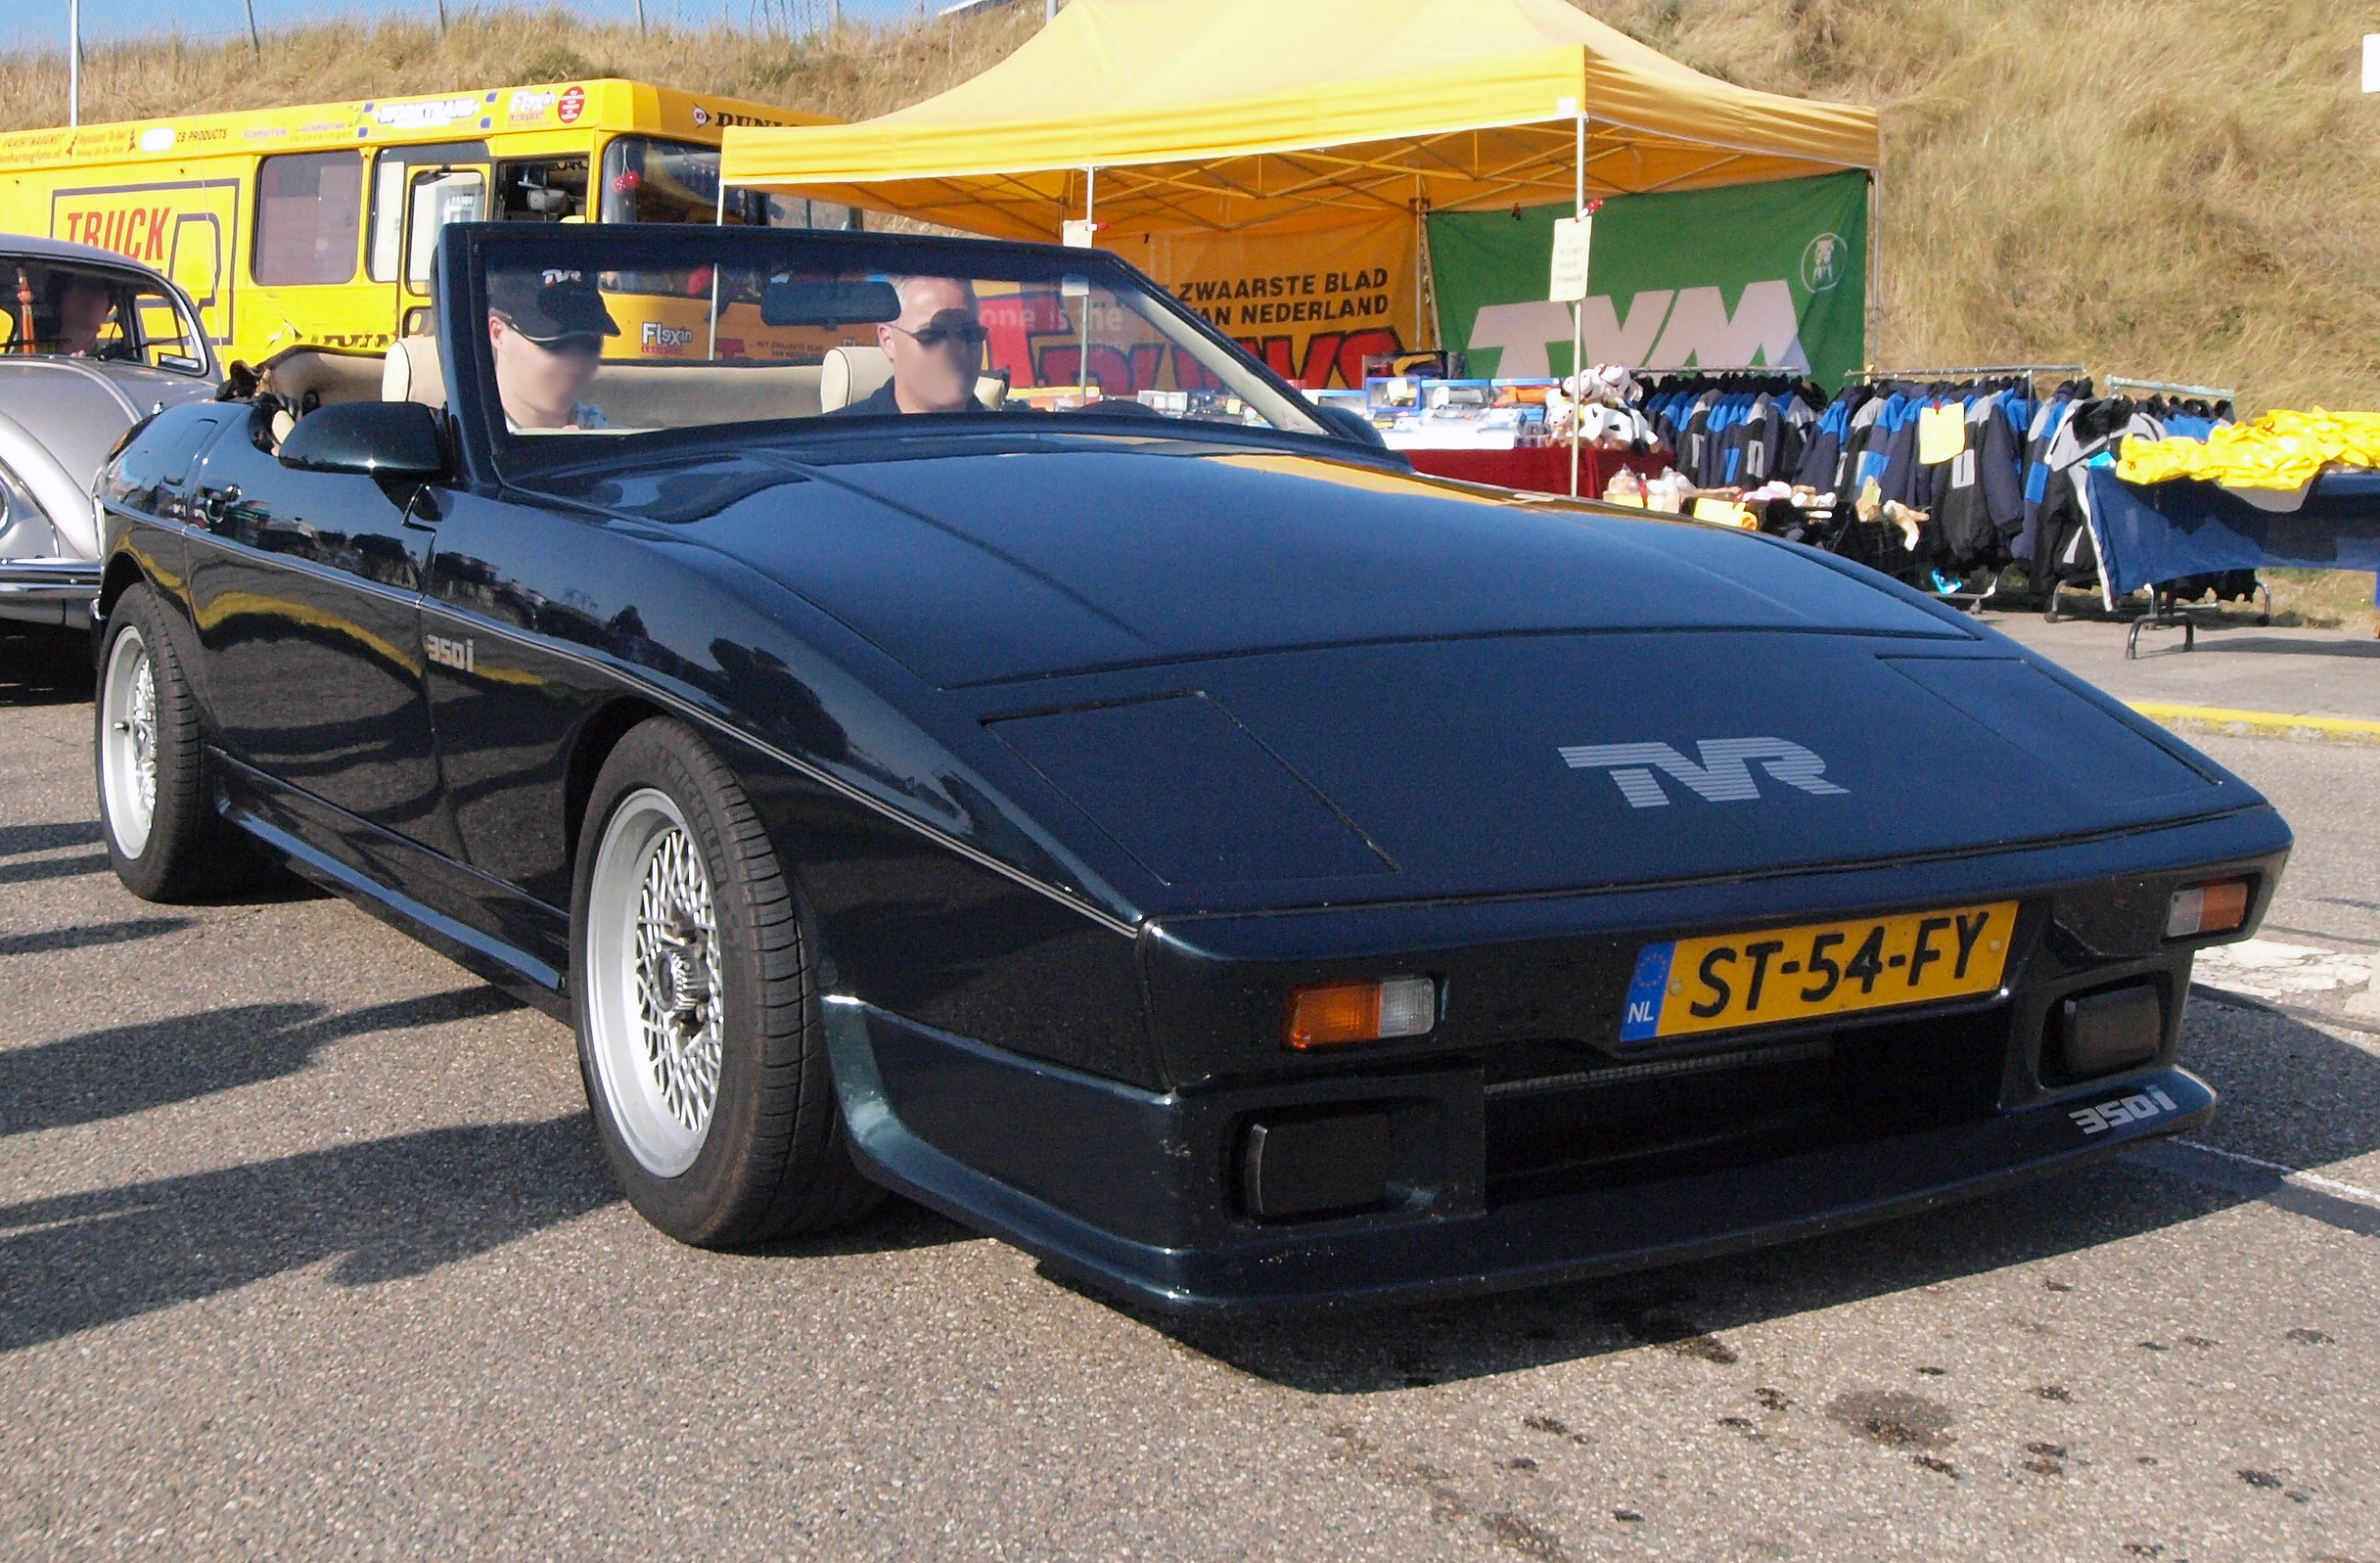 Tvr 350i photo - 3